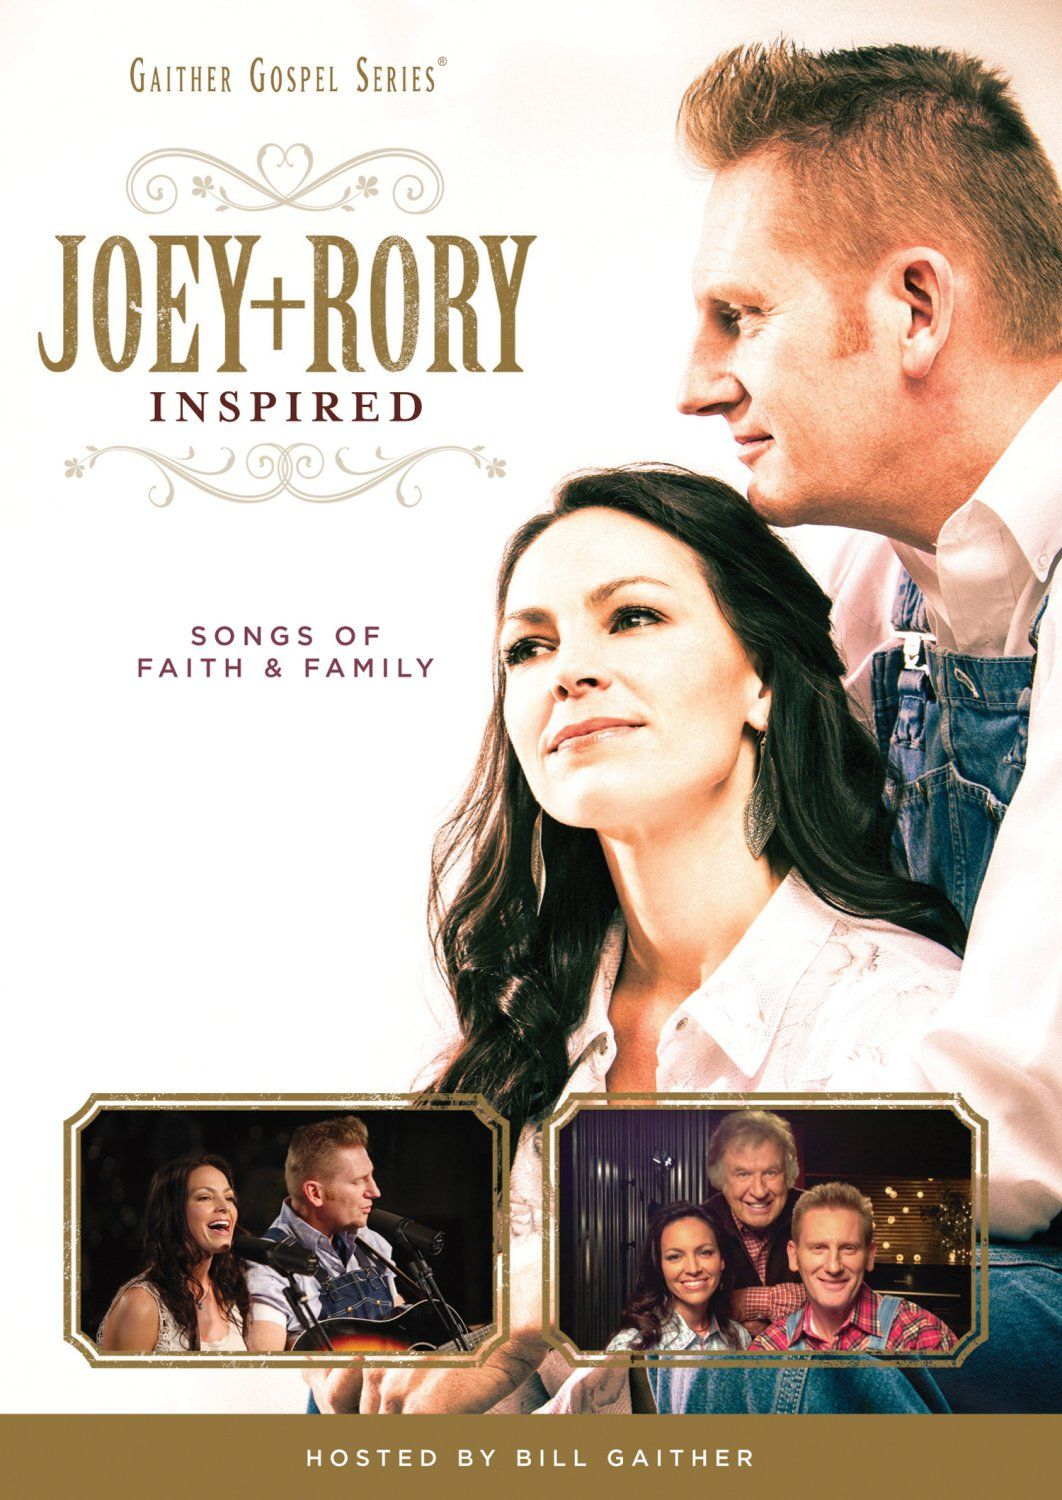 Gaither Gospel Series: Joey + Rory - Inspired